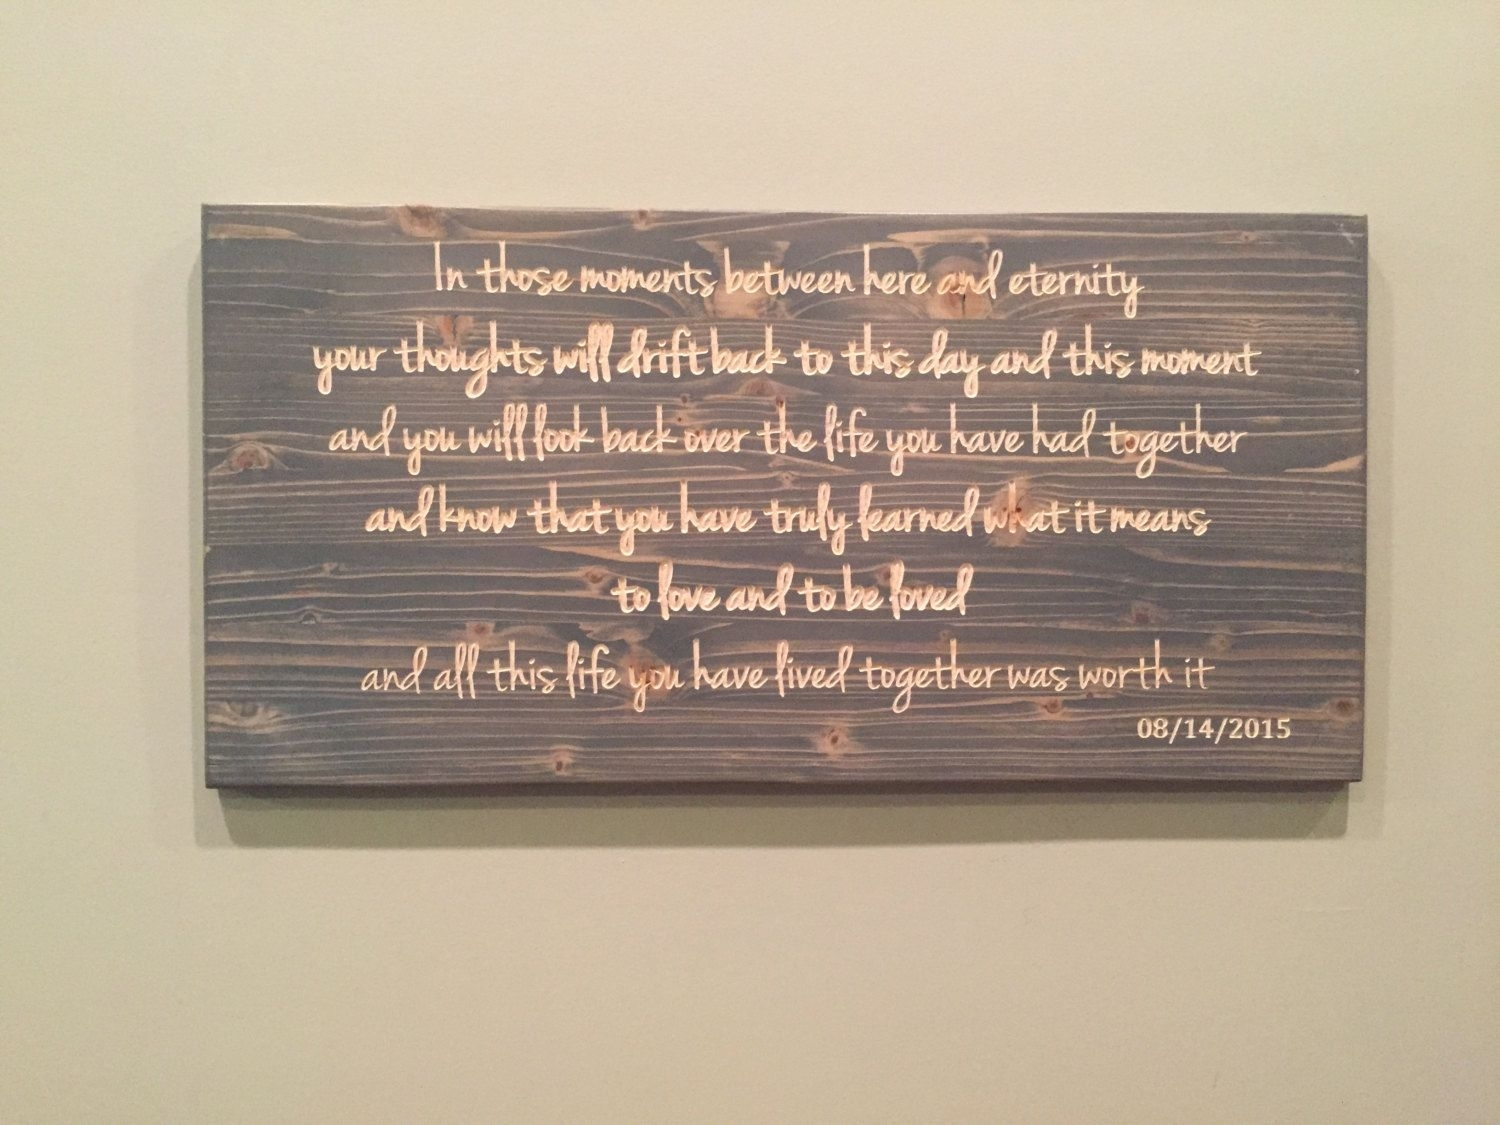 Wedding Vows, Carved Wood, Custom Quote Sign, Carved Wood Wall Art Intended For Most Recent Wood Wall Art Quotes (View 17 of 20)